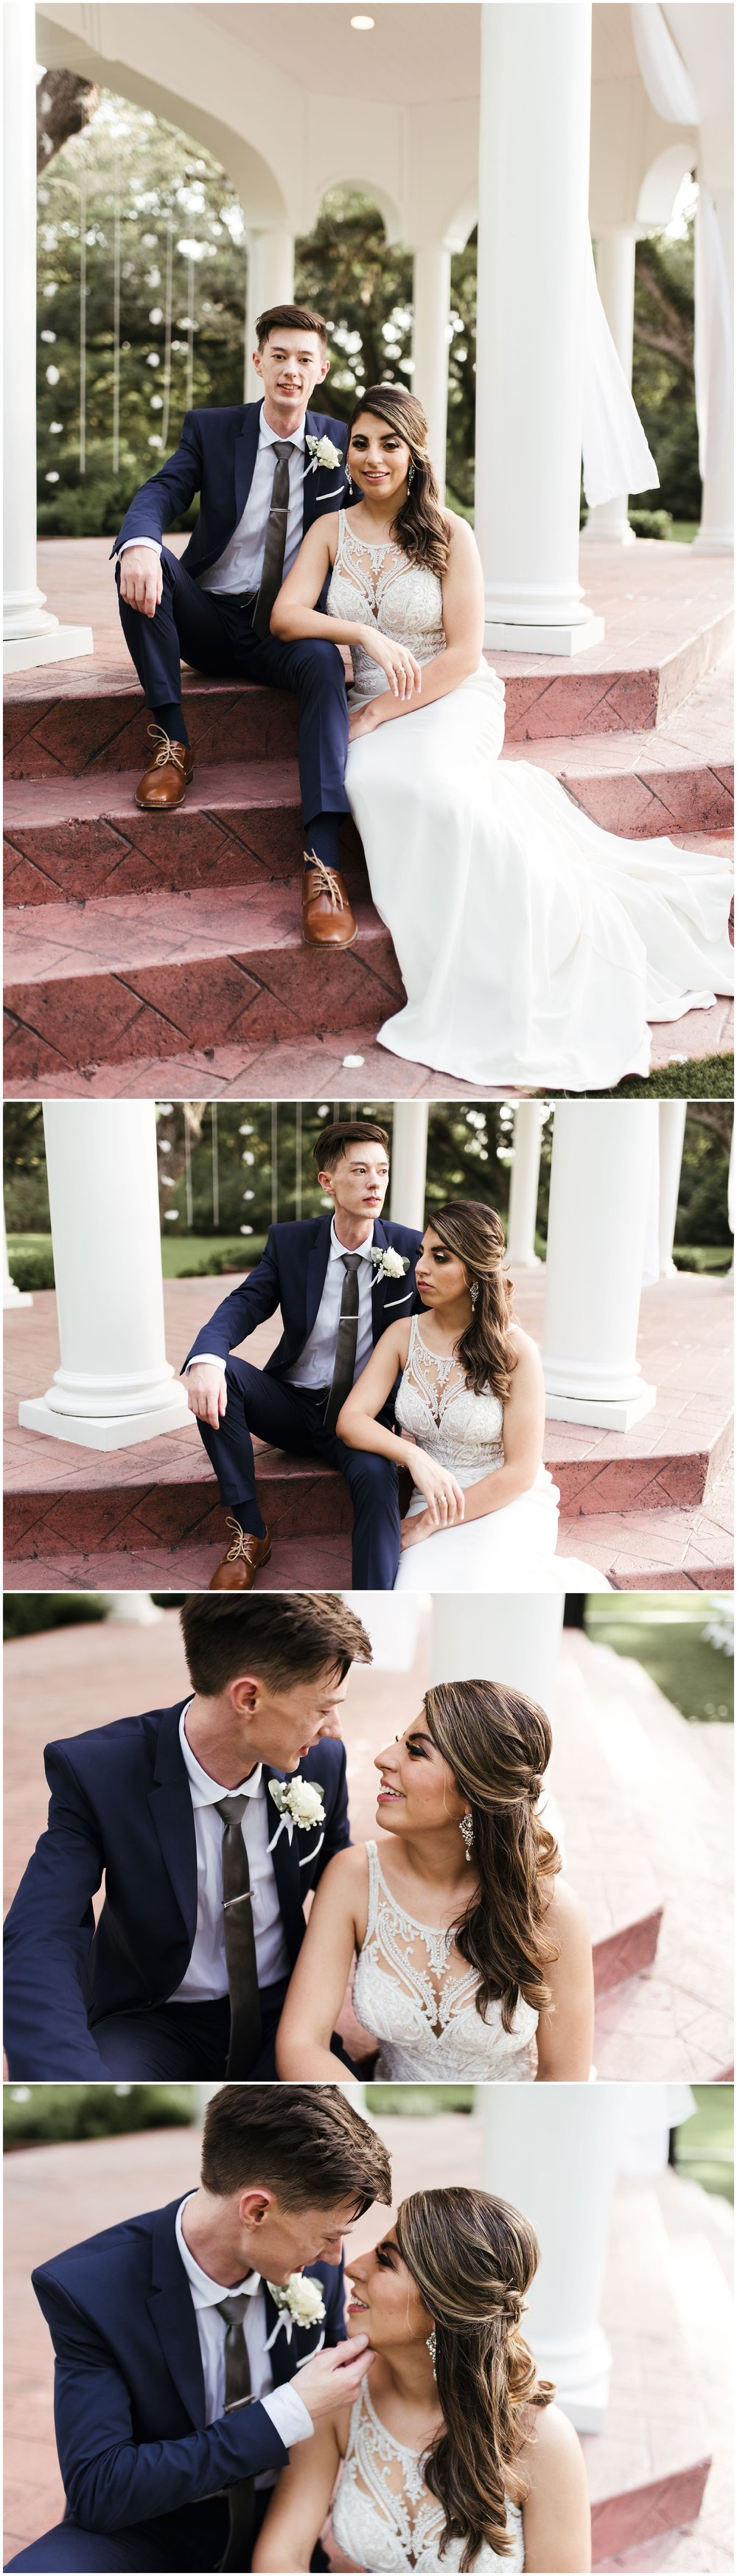 Fort Worth wedding photographer | Dallas wedding photographer | magnolia manor wedding |www.jordanmitchellphotography.com